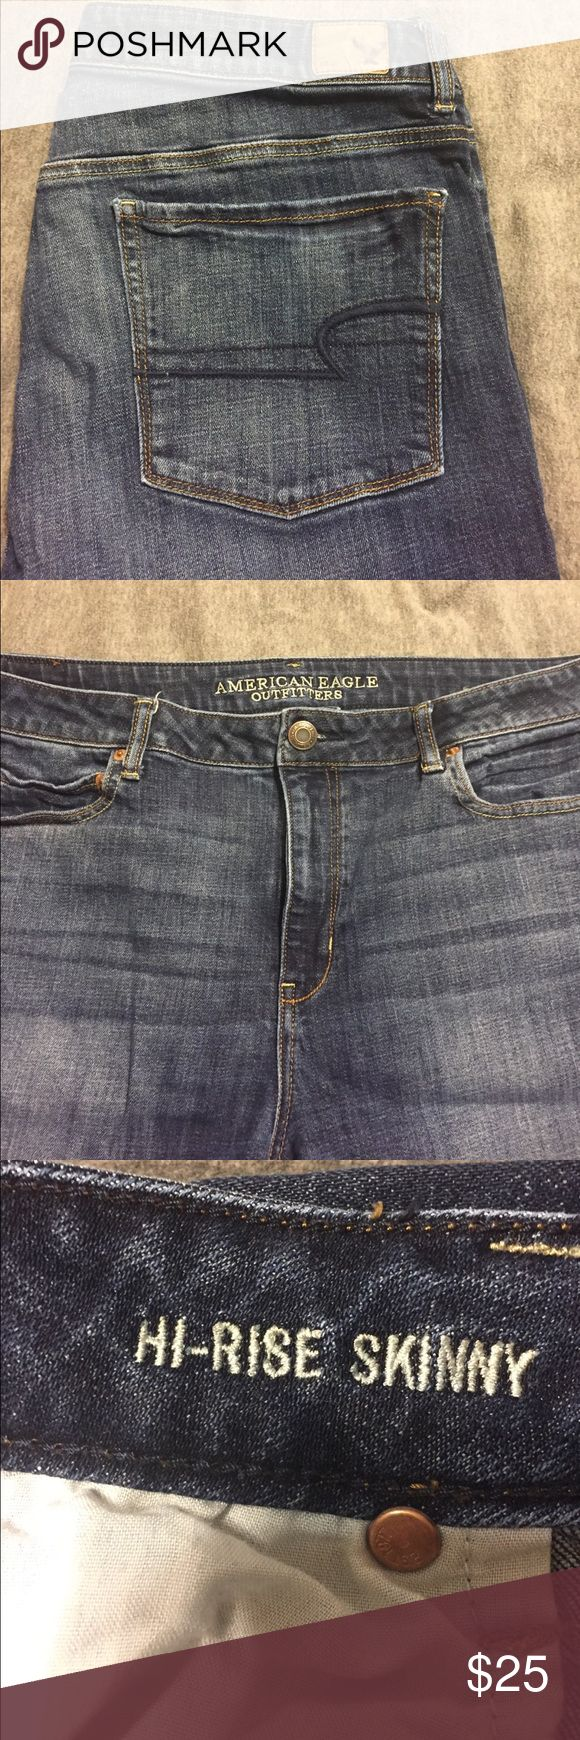 American Eagle skinny jeans High rise skinny jean regular length American Eagle Outfitters Jeans Skinny